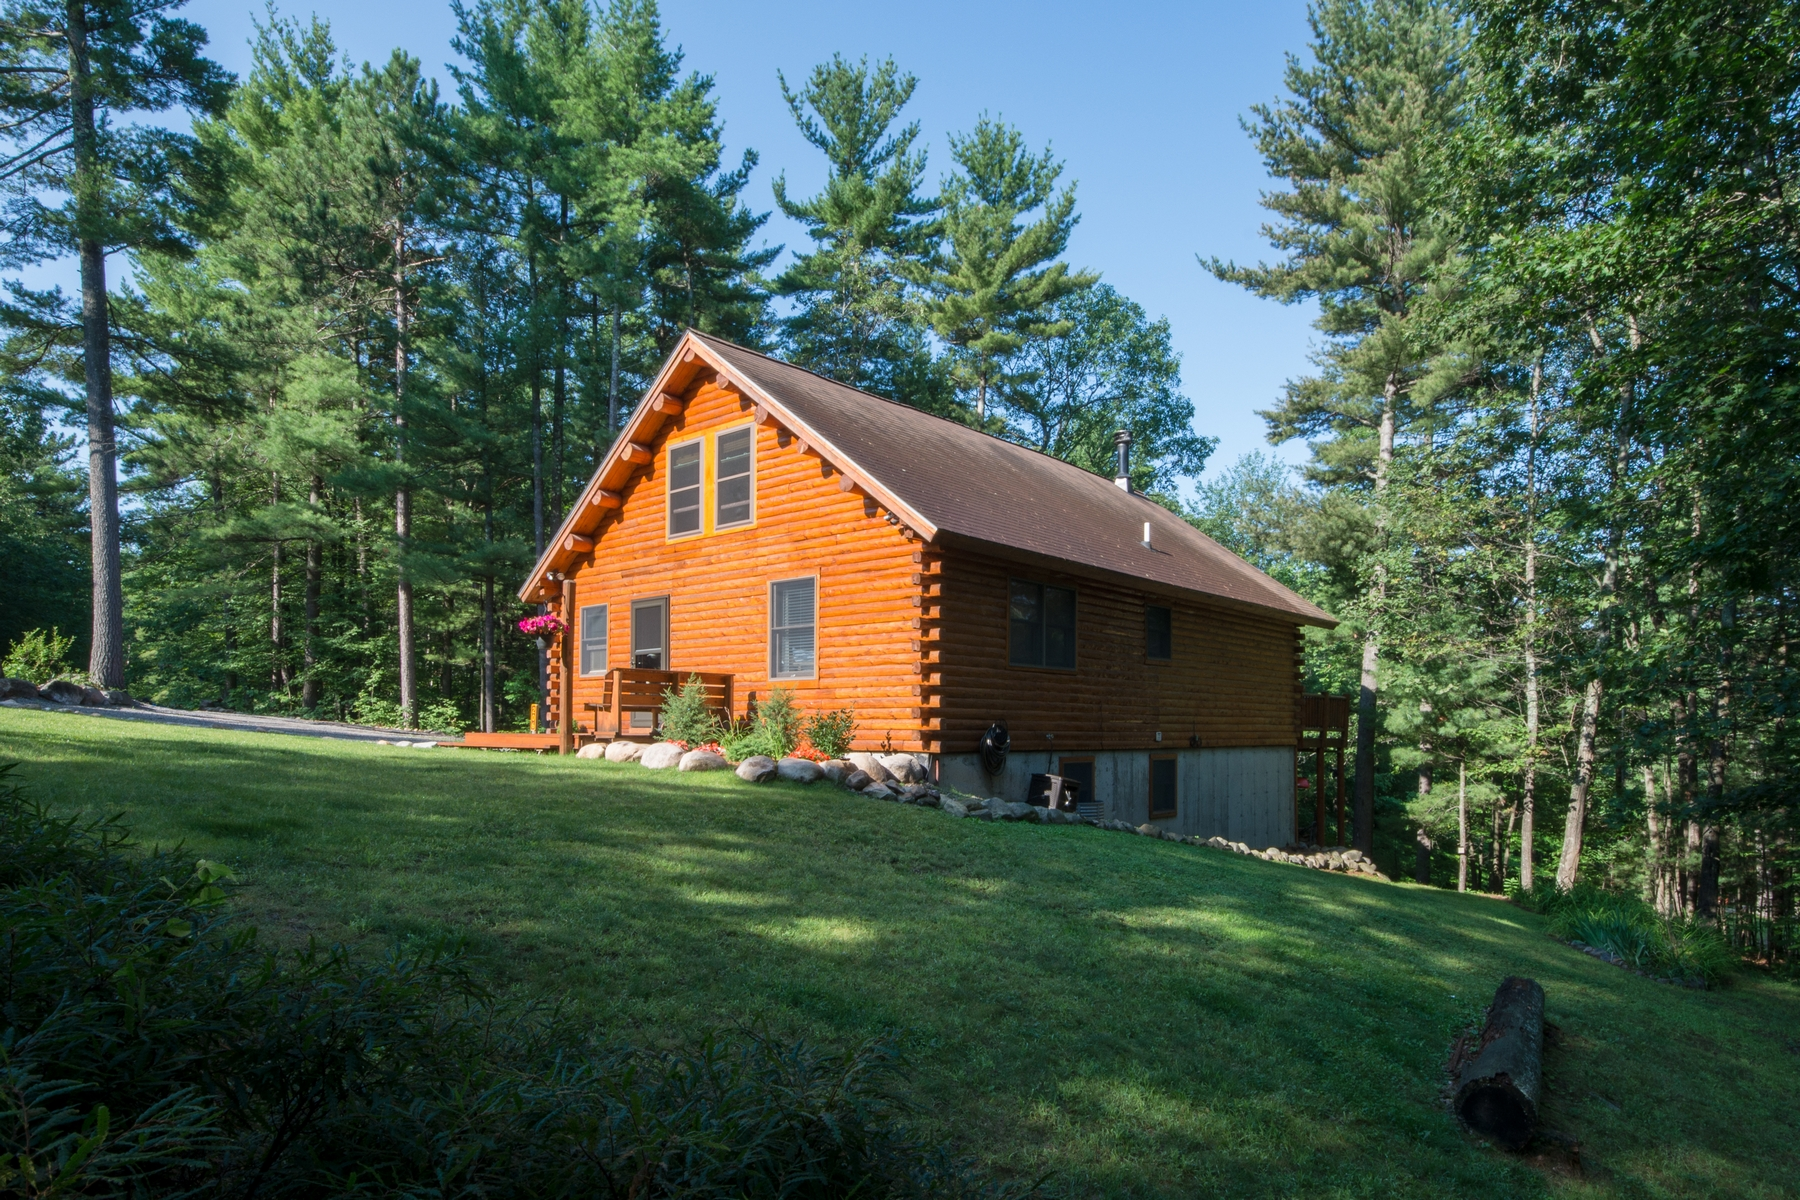 Other Residential for Sale at Adirondack Log Cabin 206 Sequoia Mountain Lane Jay, New York 12941 United States